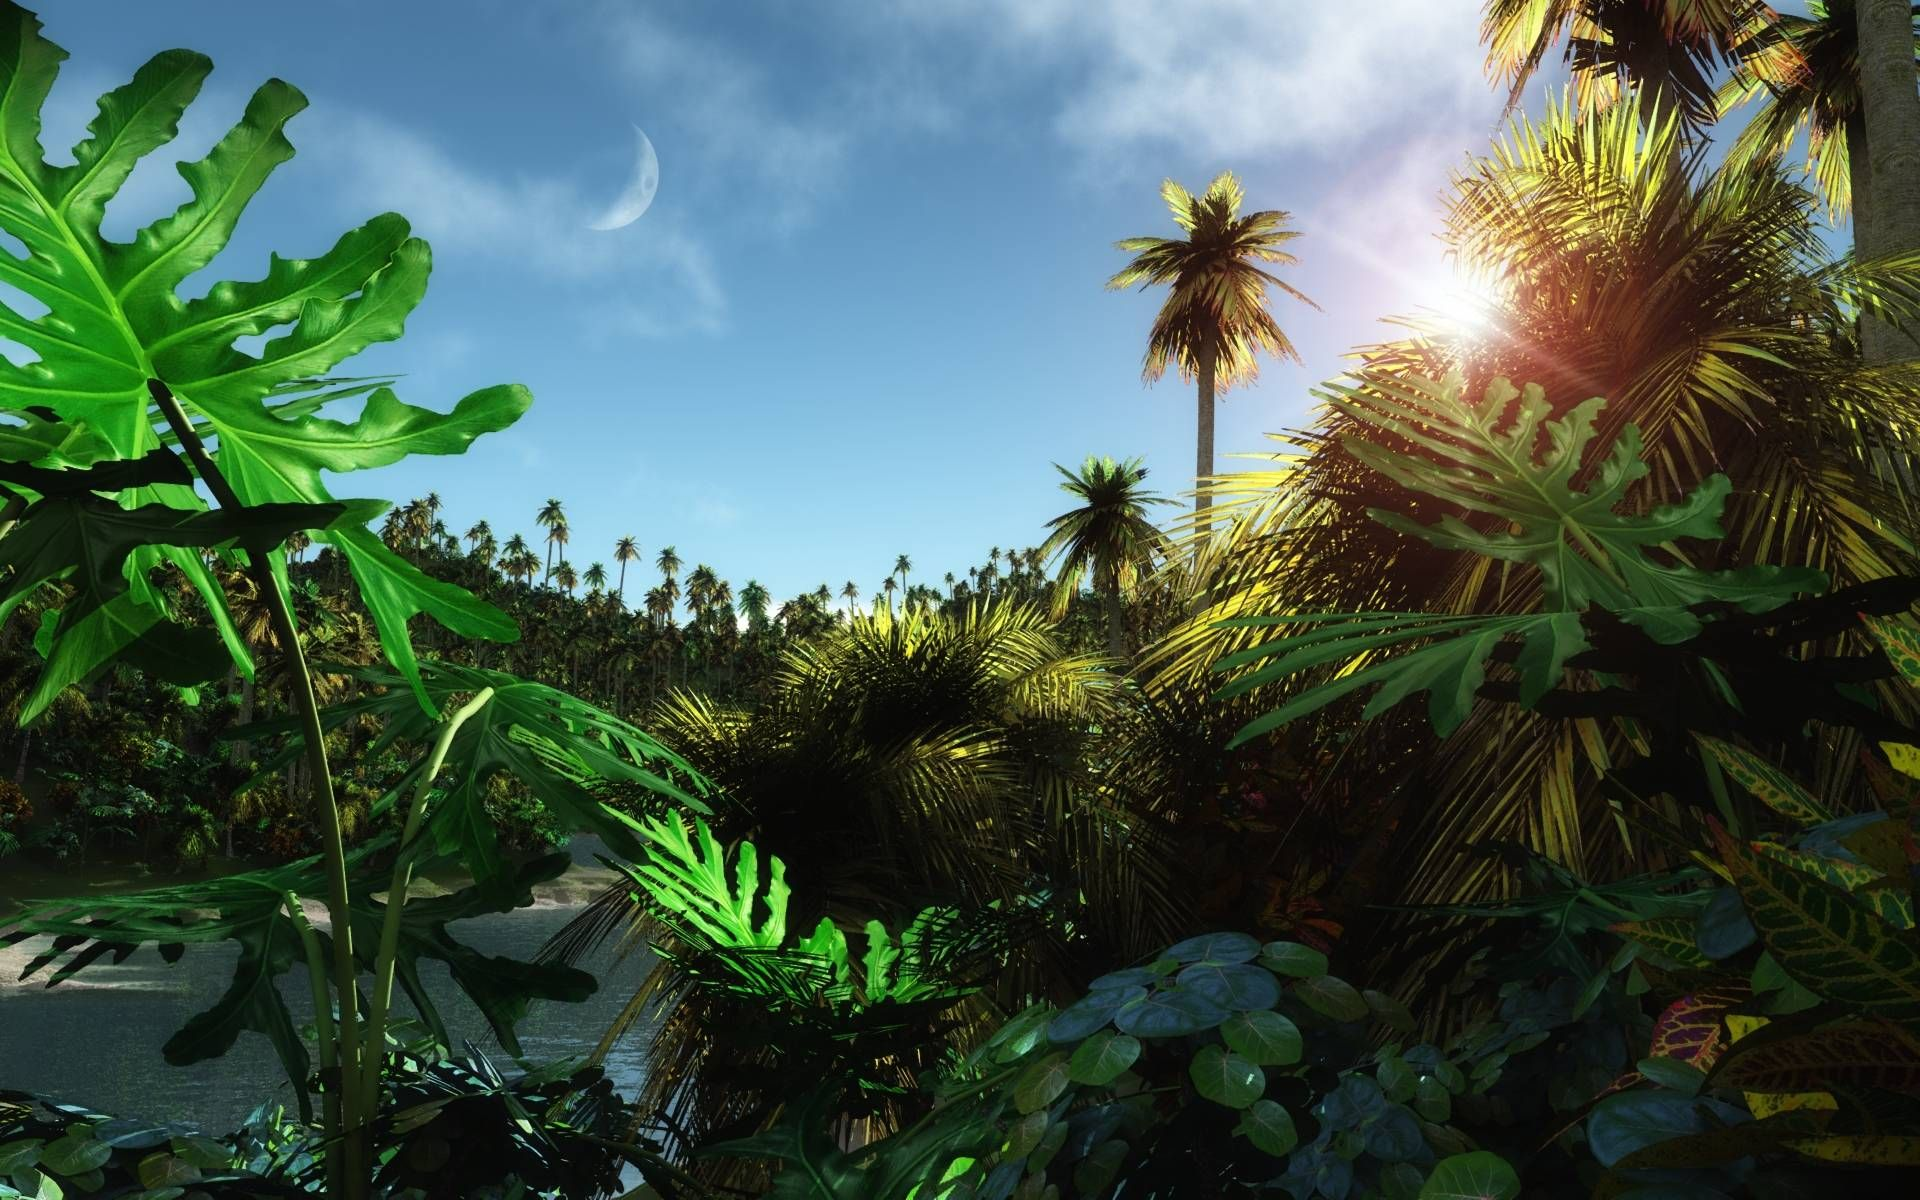 Wallpapers For Animated Jungle Background Hd Jungle Wallpaper Wallpaper Cool Wallpaper